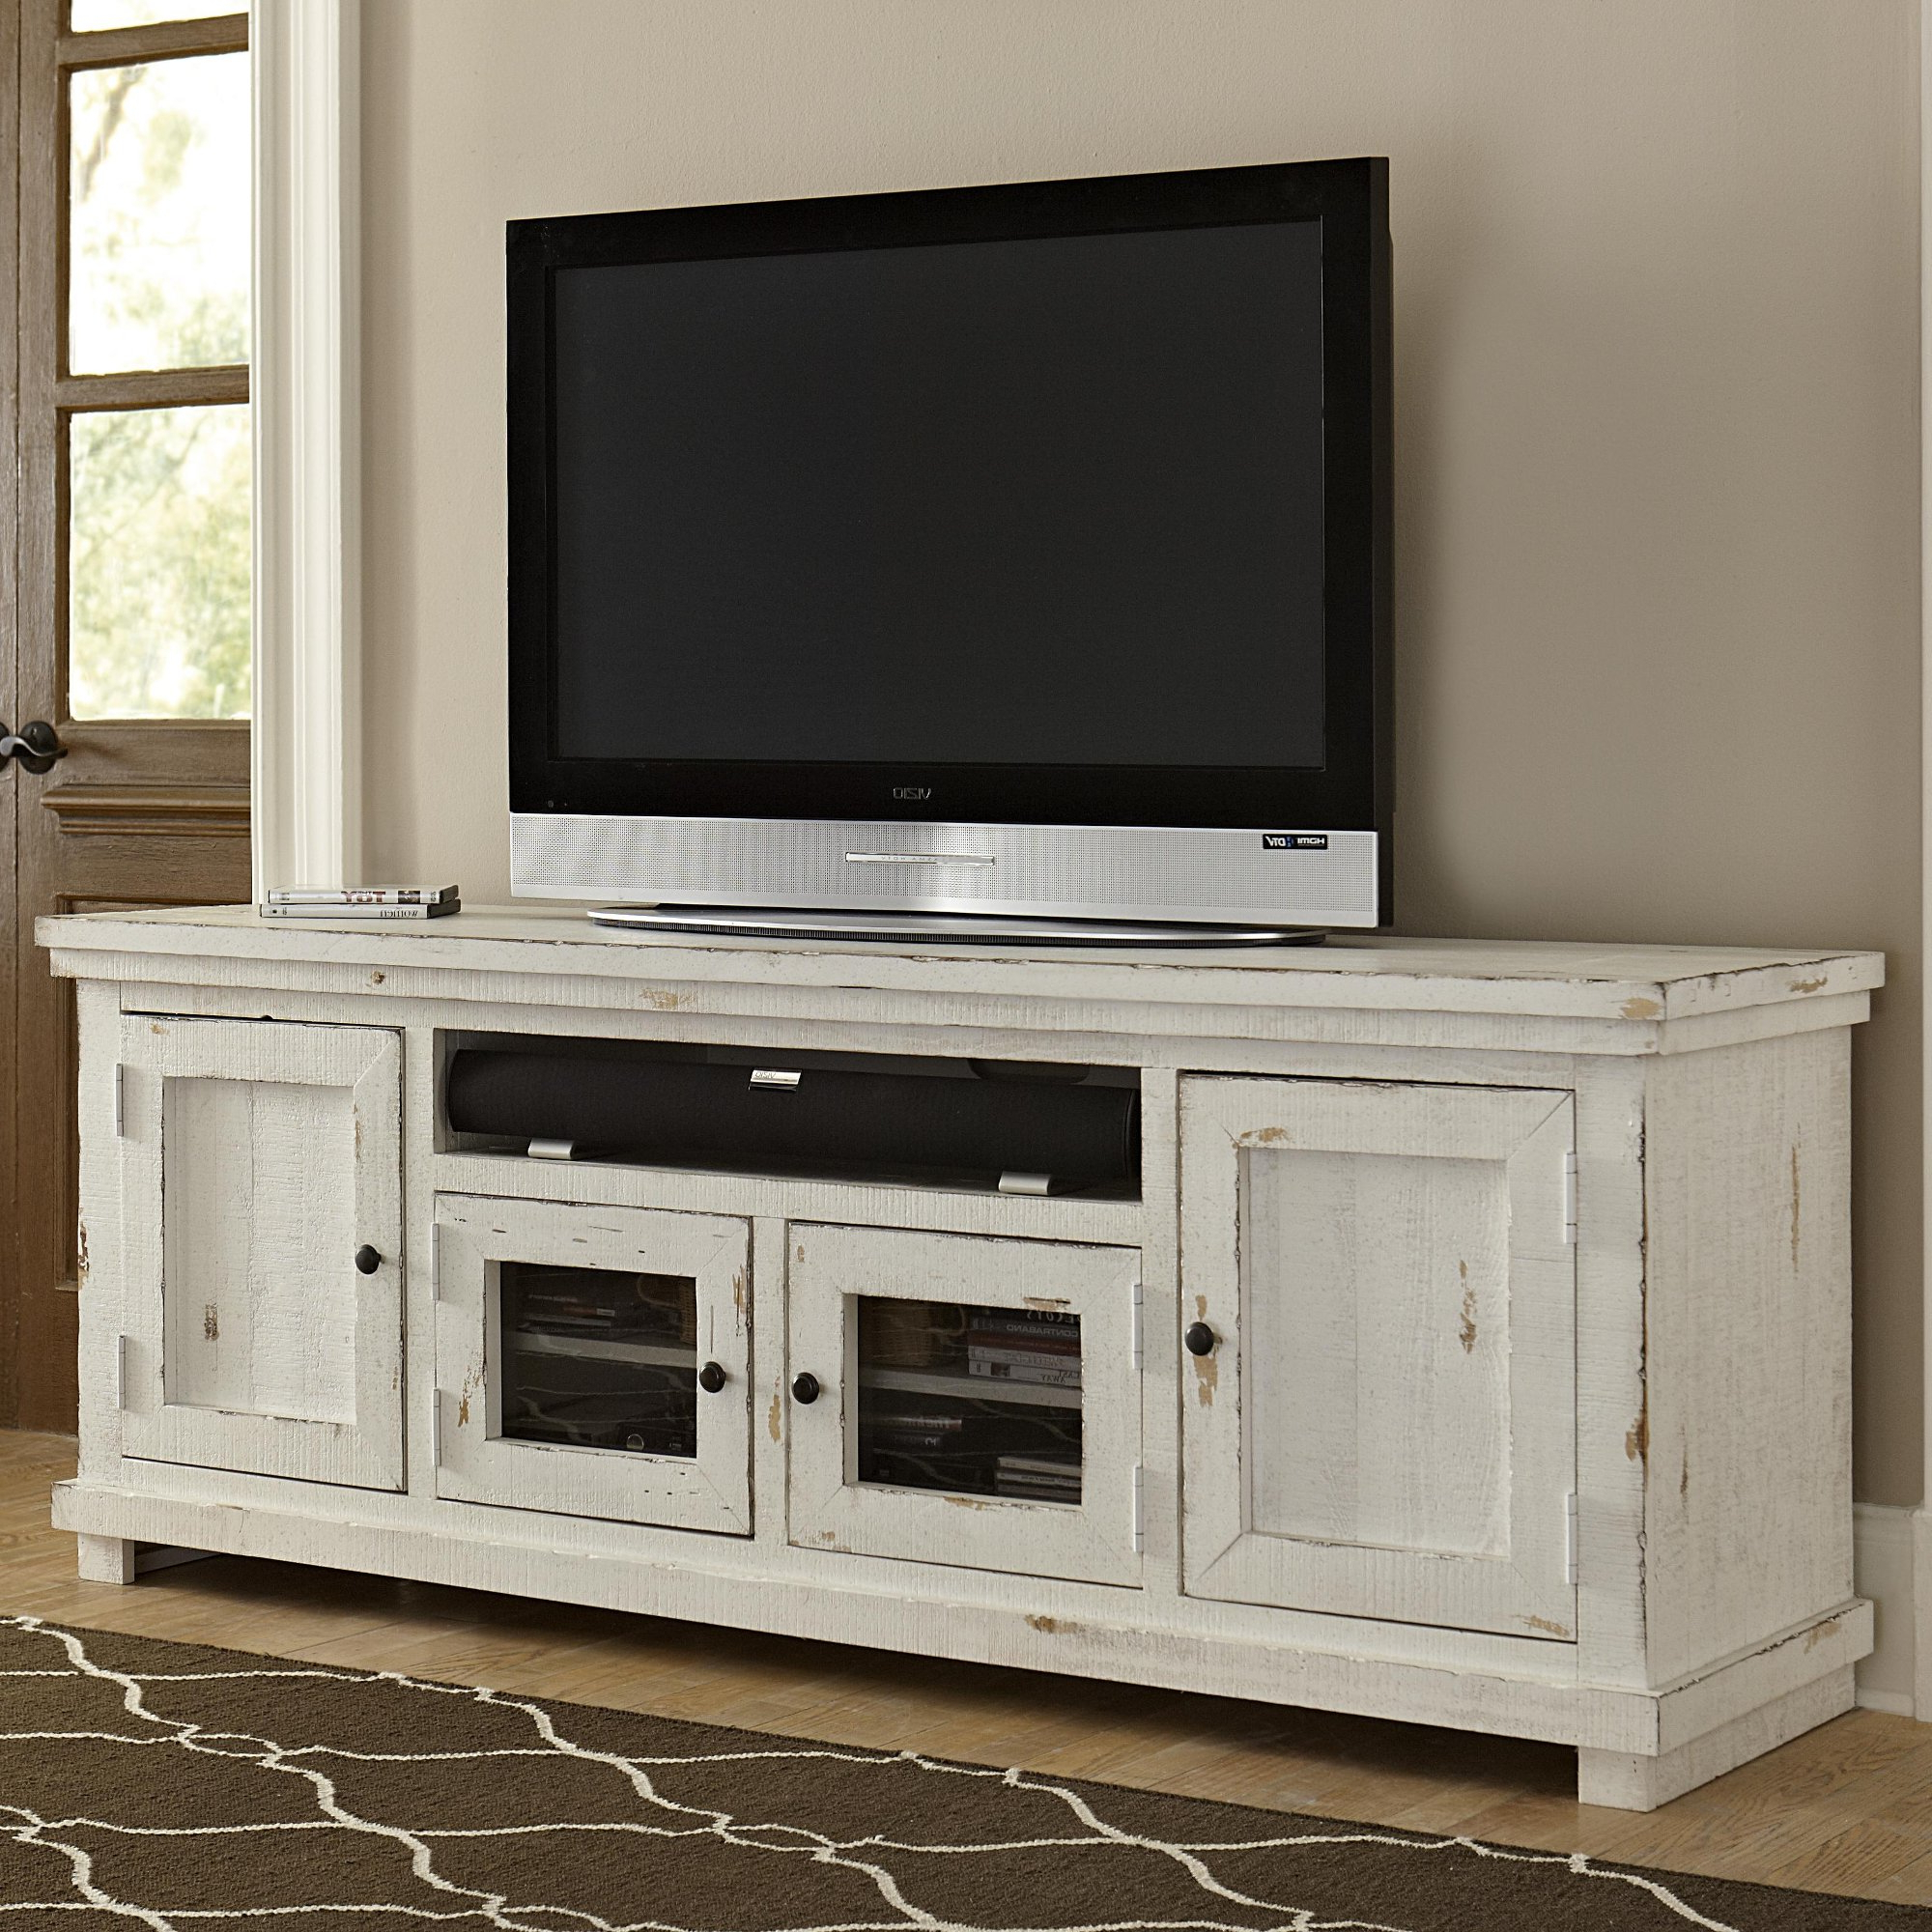 2017 Mda Designs Avitus Whitewhite Tv Stands Chinese Tv Cabinet Within Ovid White Tv Stand (View 1 of 20)